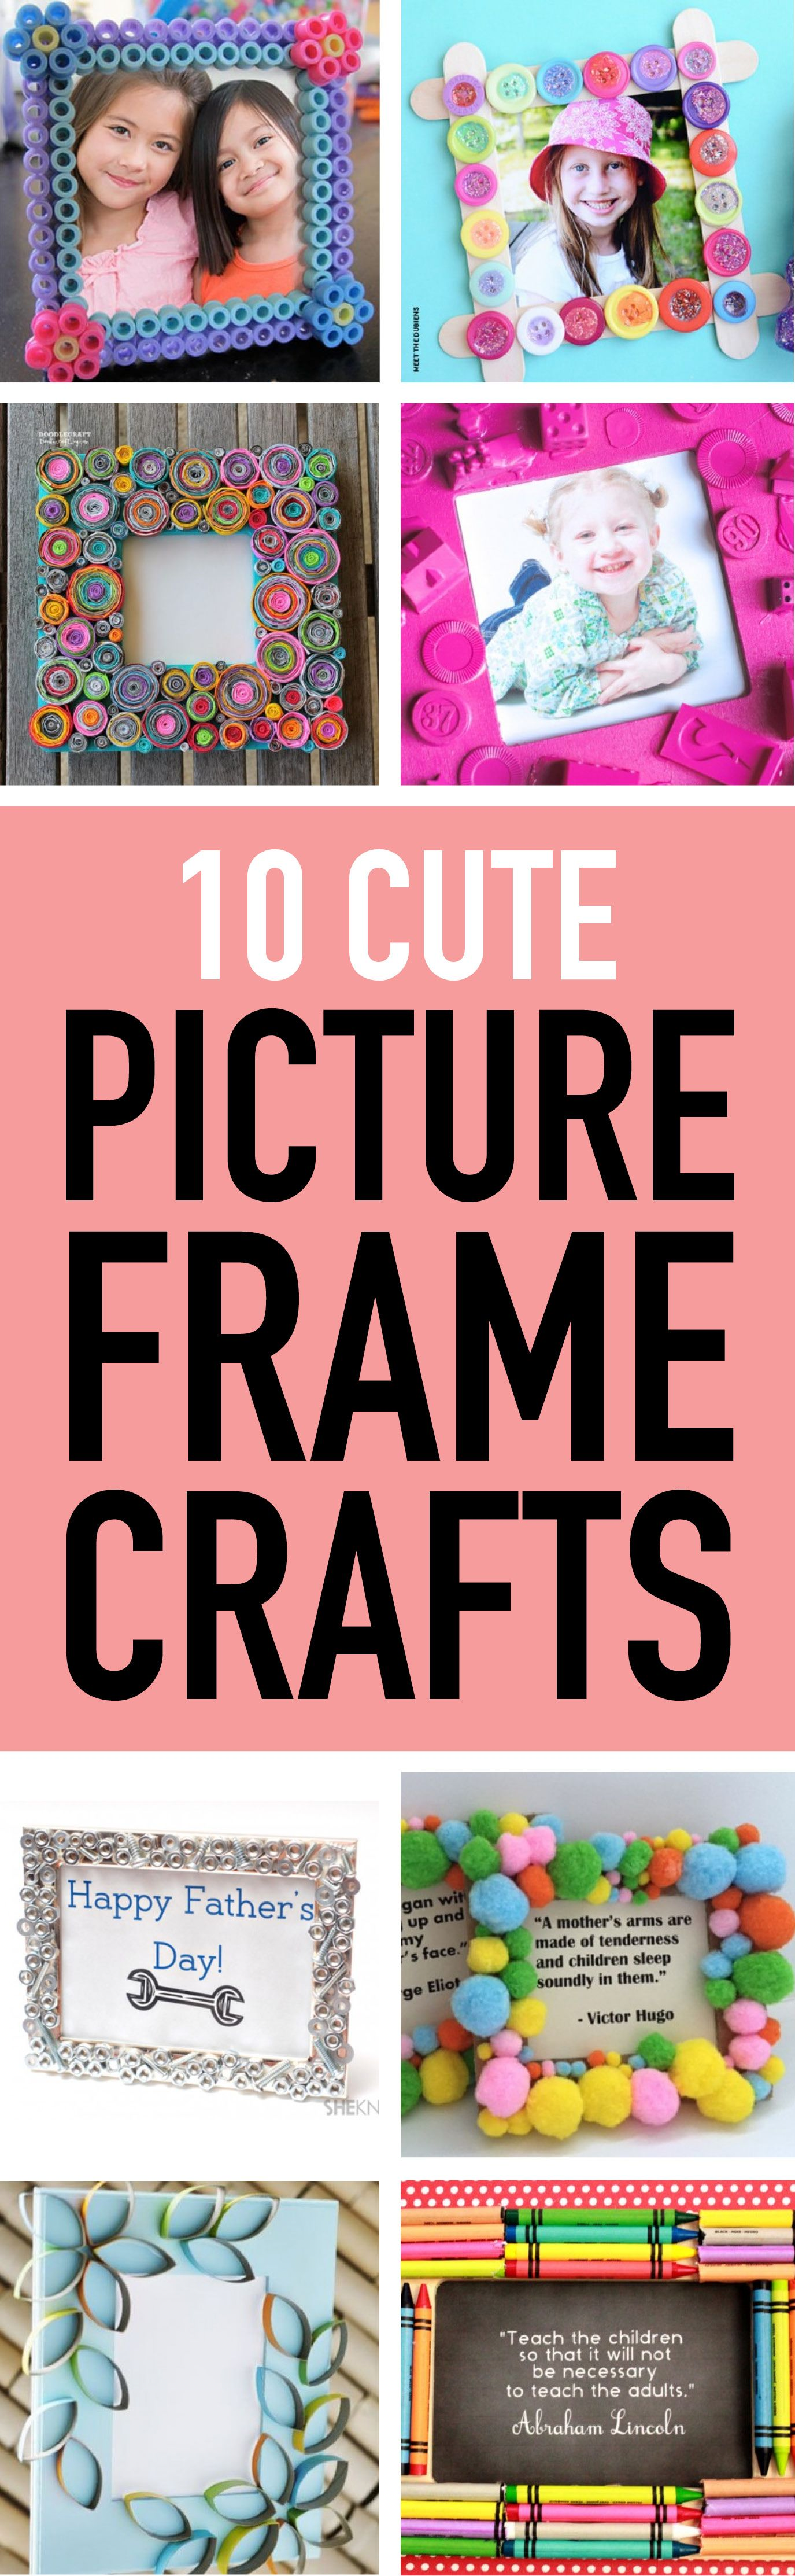 10 cute picture frame crafts craft frame crafts and picture looking for a way to entertain the kids try one of these fun picture frame crafts jeuxipadfo Gallery